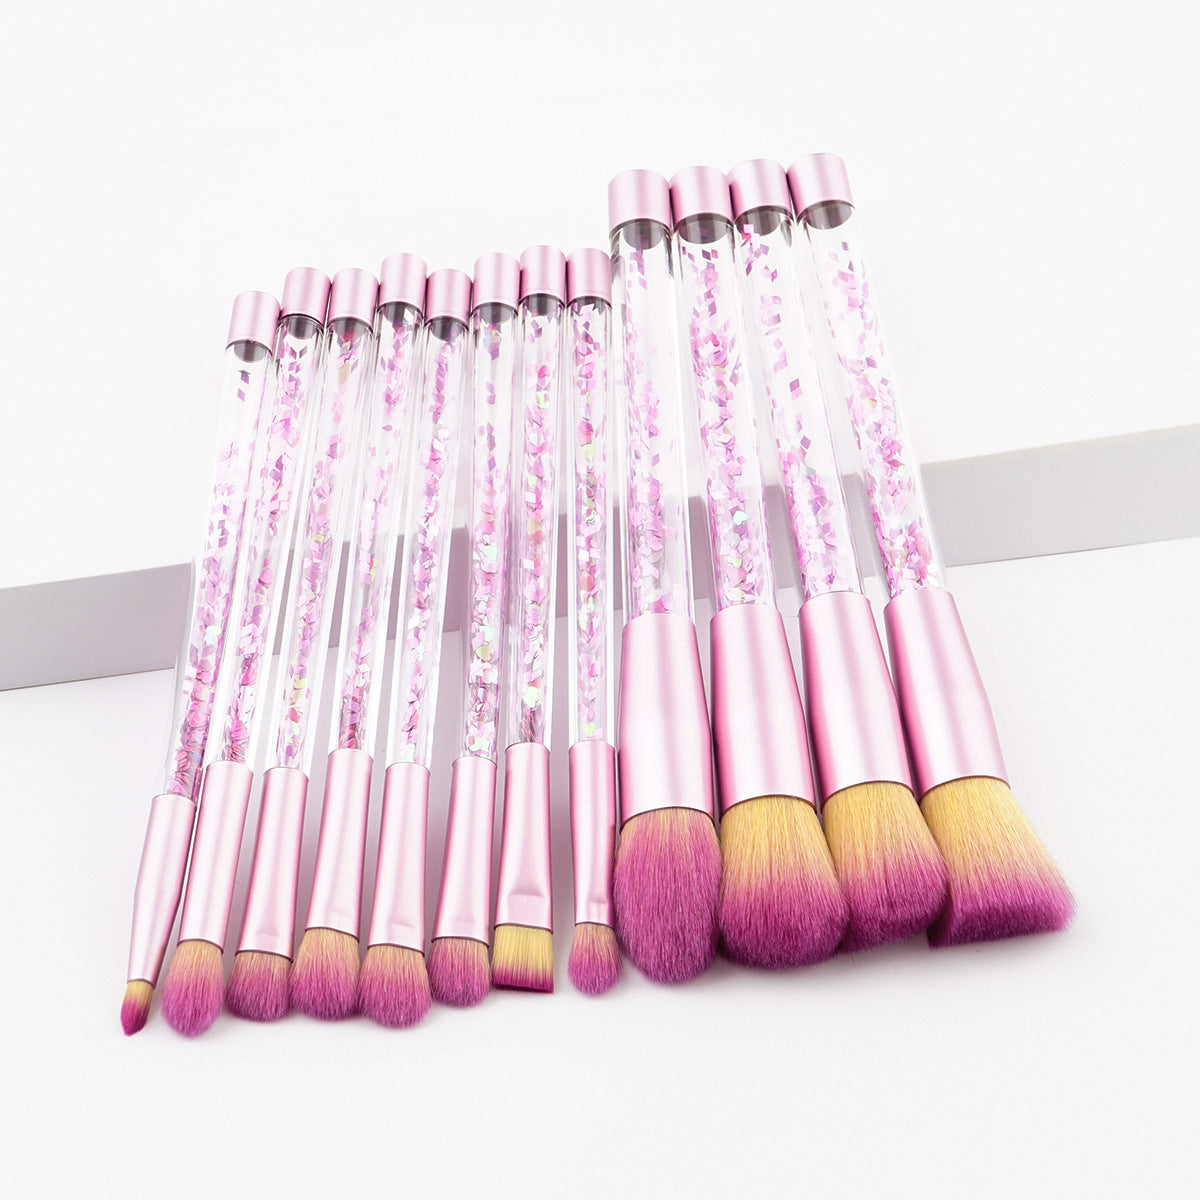 7/12Pcs Crystal Glitter Makeup Brush Set.